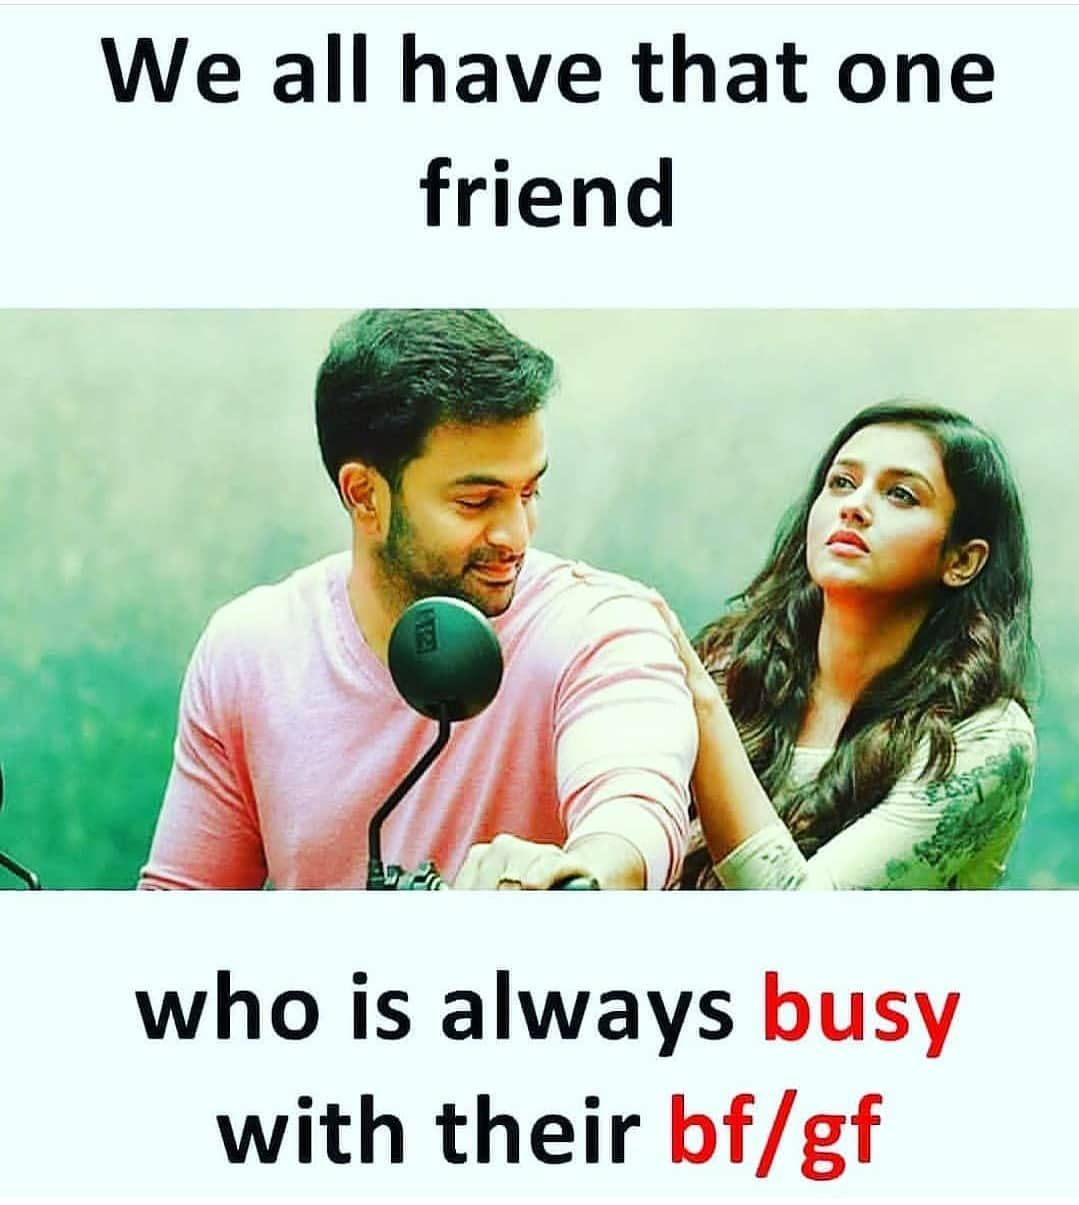 Tag Your Friends Friendship Friends Love Fun Happy Smile Instagood Like Friend Tag Your Friends Friends Friendship Quotes Funny Me That One Friend